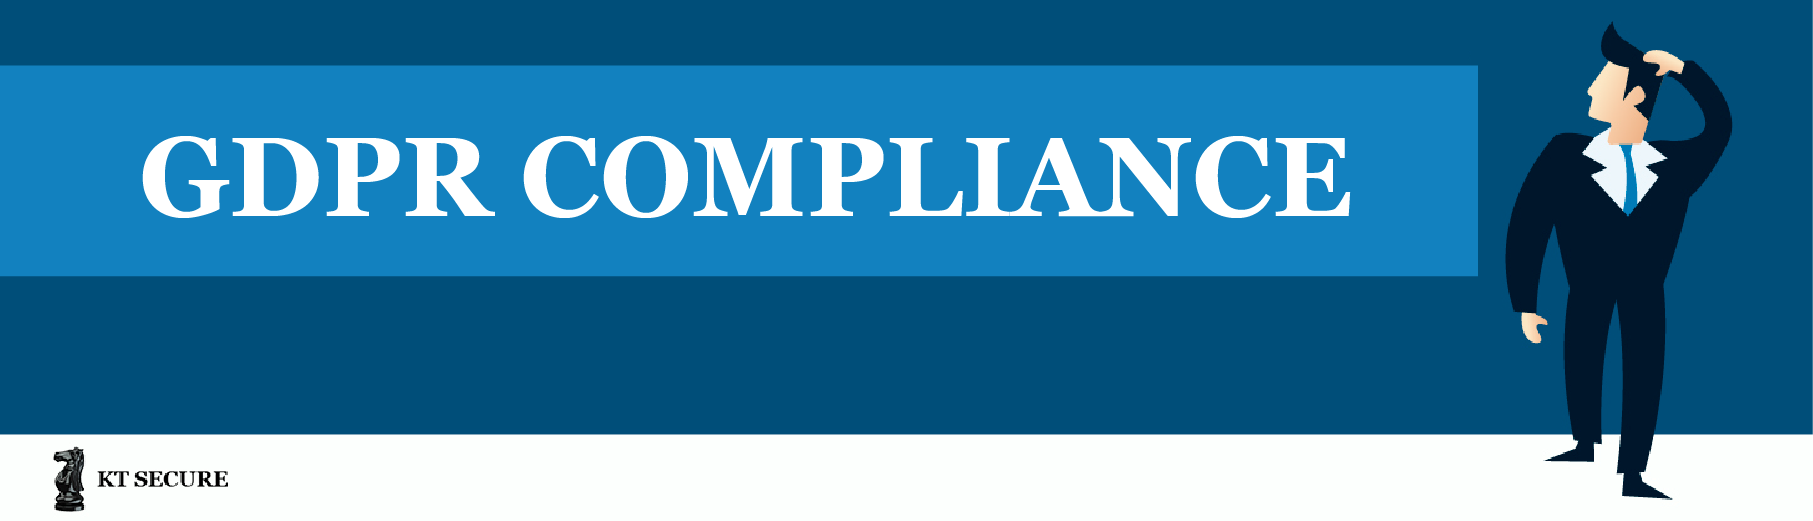 GDPR Compliance Cover